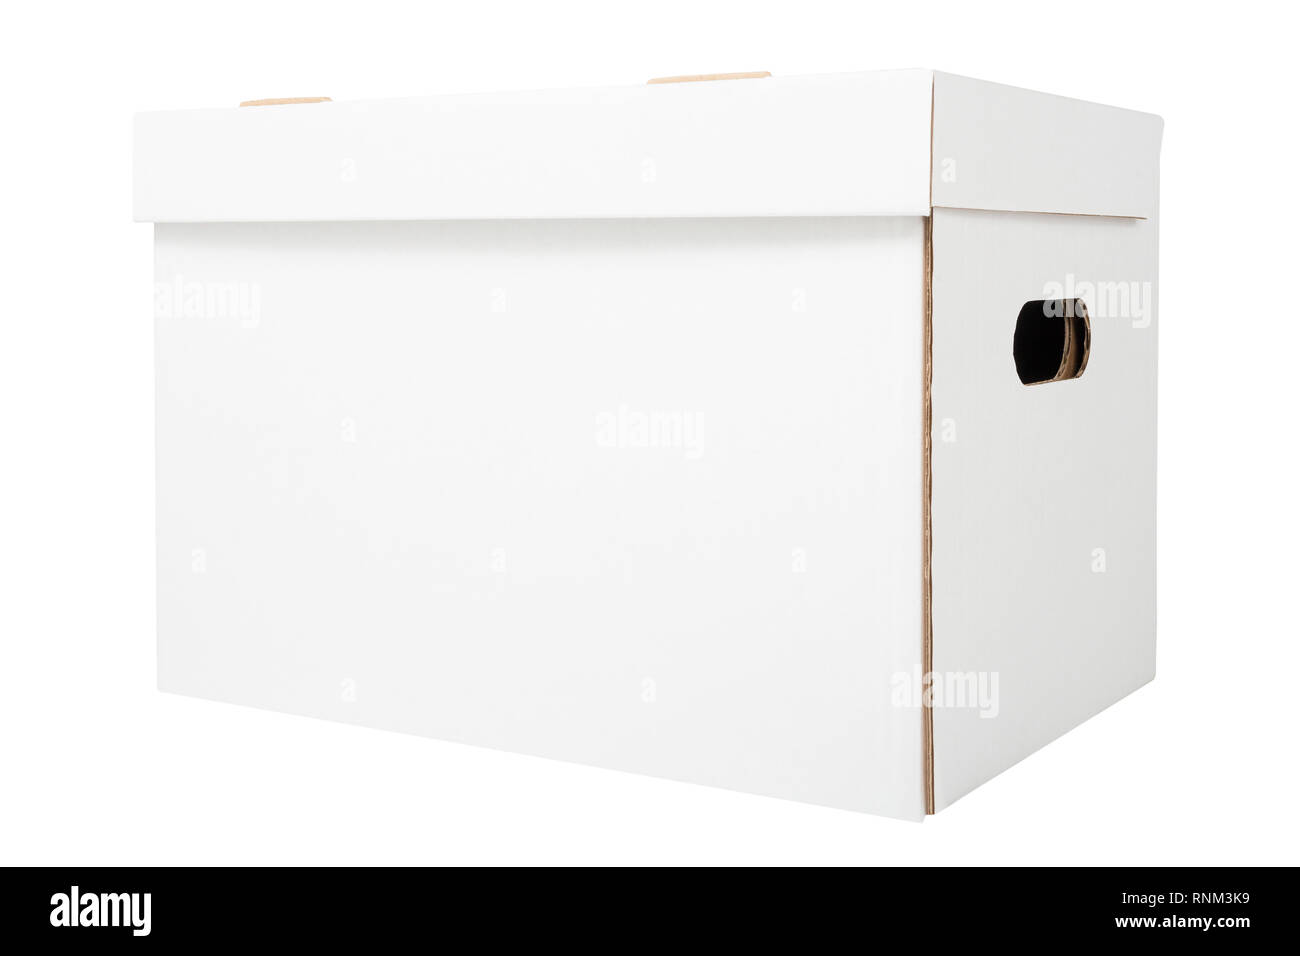 White cardboard box isolated on white background. White file box for bookkeeping - Stock Image